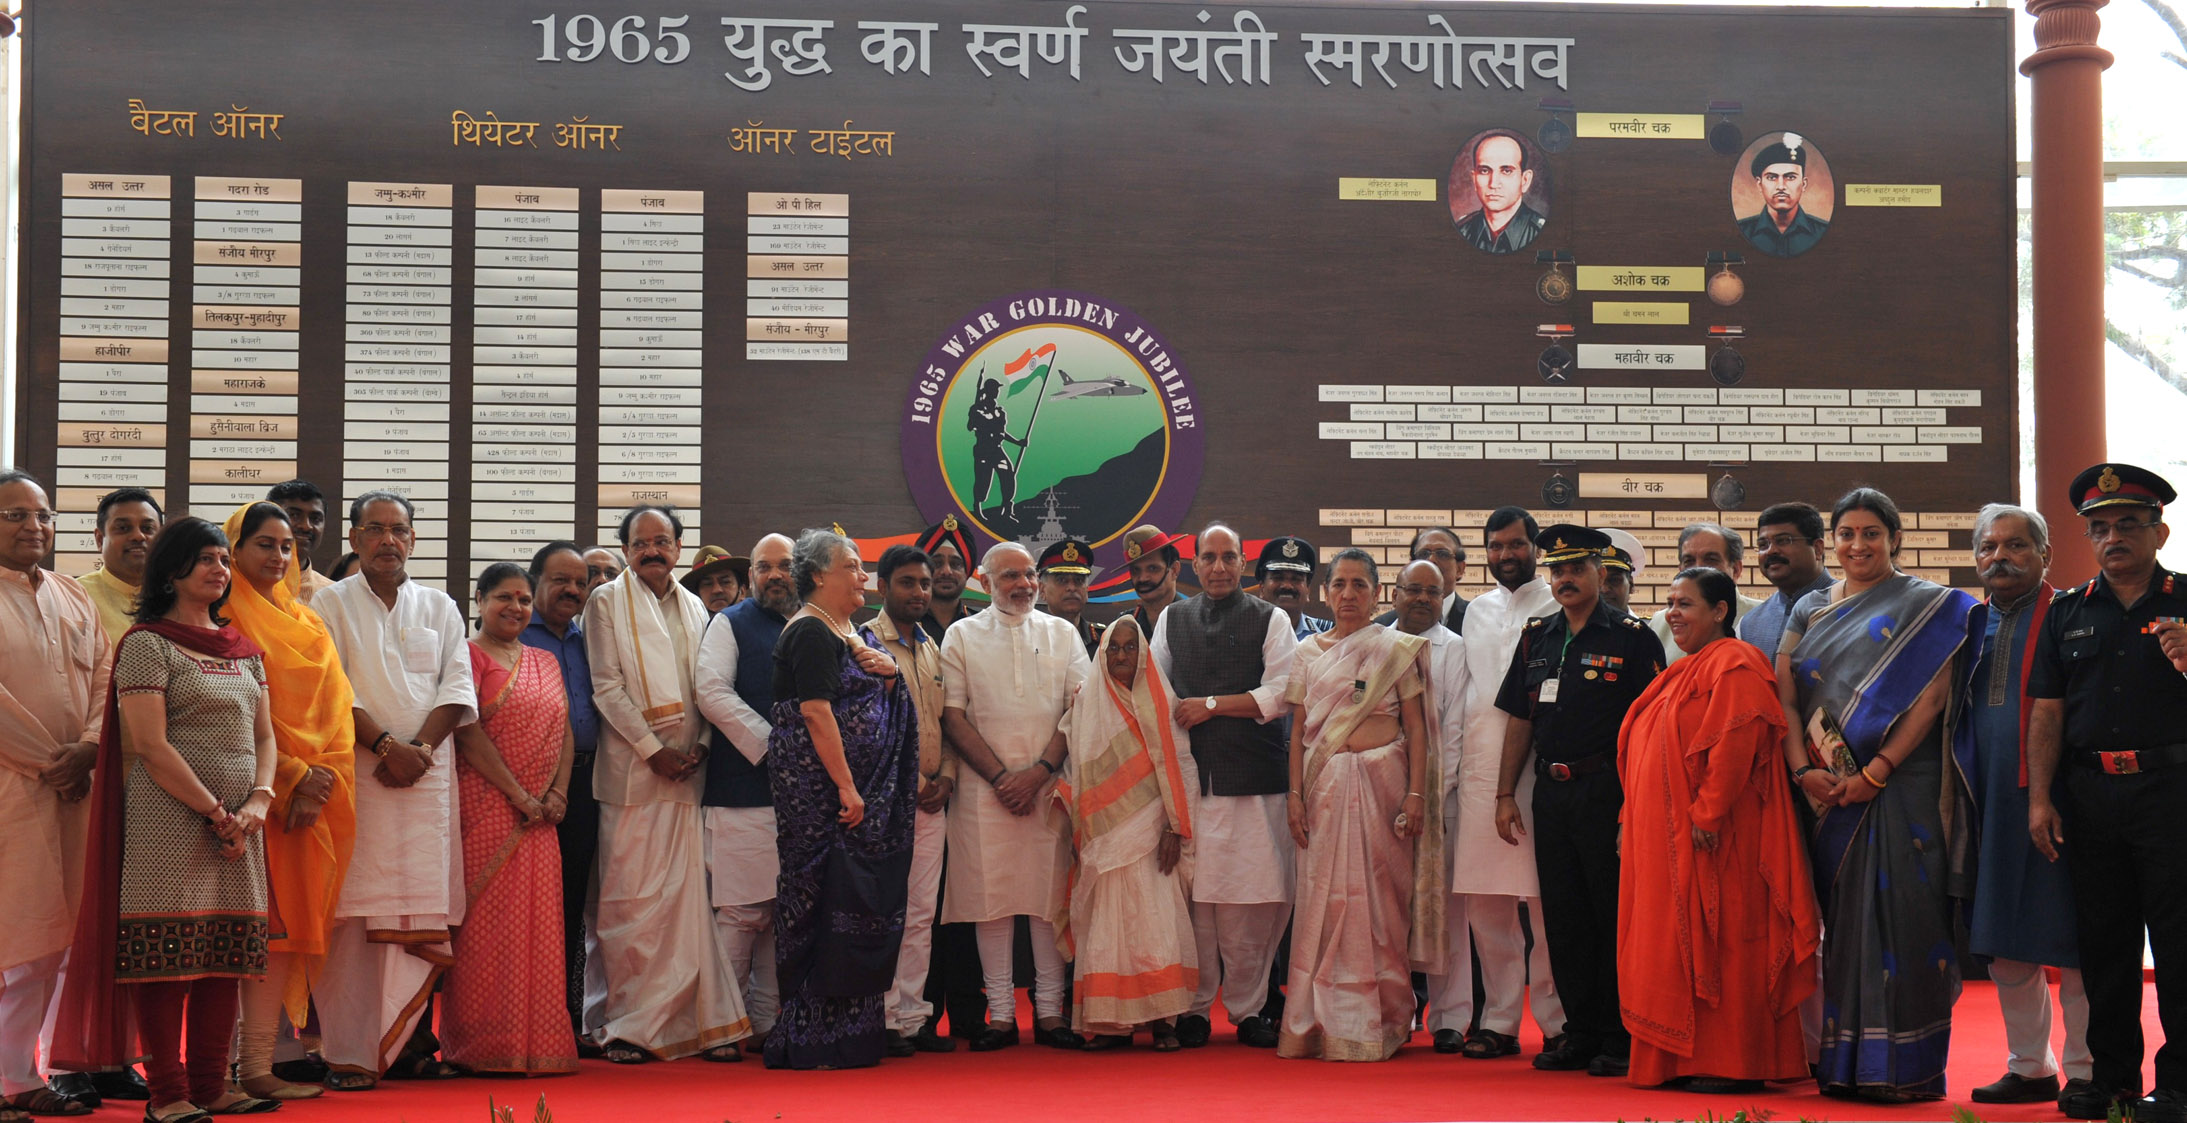 The Prime Minister, Shri Narendra Modi at 'Shauryanjali', a commemorative exhibition on Golden Jubilee of 1965 war, at India Gate, in New Delhi on September 17, 2015. The Union Ministers and other dignitaries are also seen.